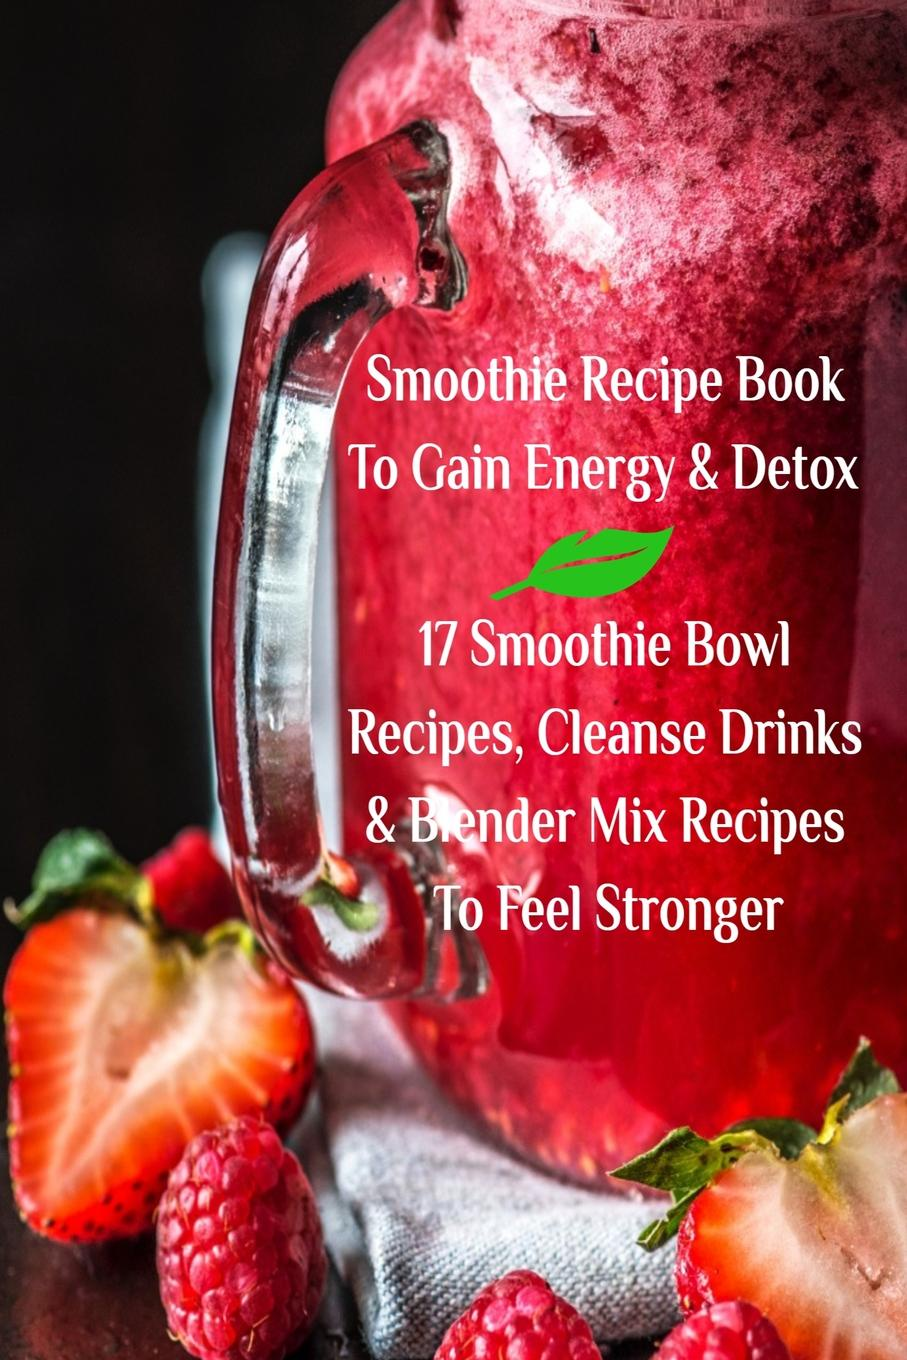 Фото - Juliana Baltimoore Smoothie Recipe Book To Gain Energy . Detox 17 Smoothie Bowl Recipes, Cleanse Drinks . Blender Mix Recipes To Feel Stronger karen parker carter irene healthy cooking fat loss with clean eating